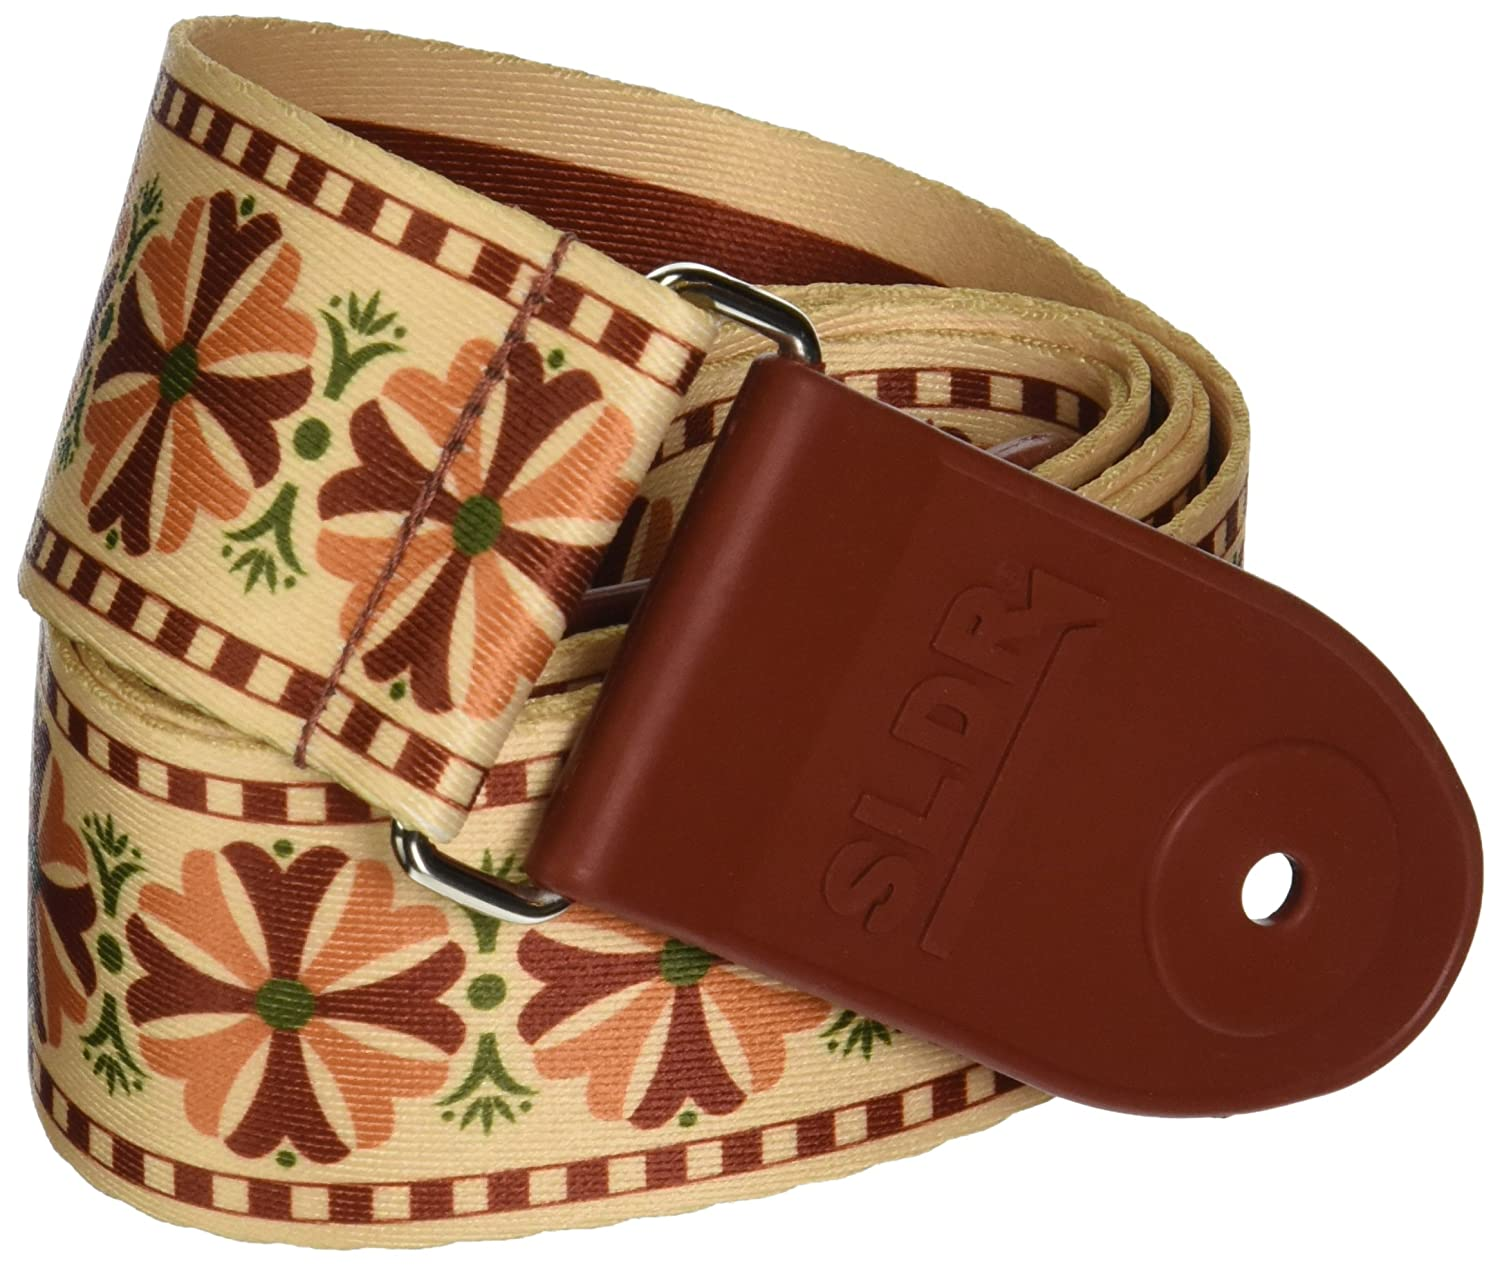 Souldier SLSTL03 SLDR Locking Guitar Strap, Stella-Tan/Burgundy/Pink